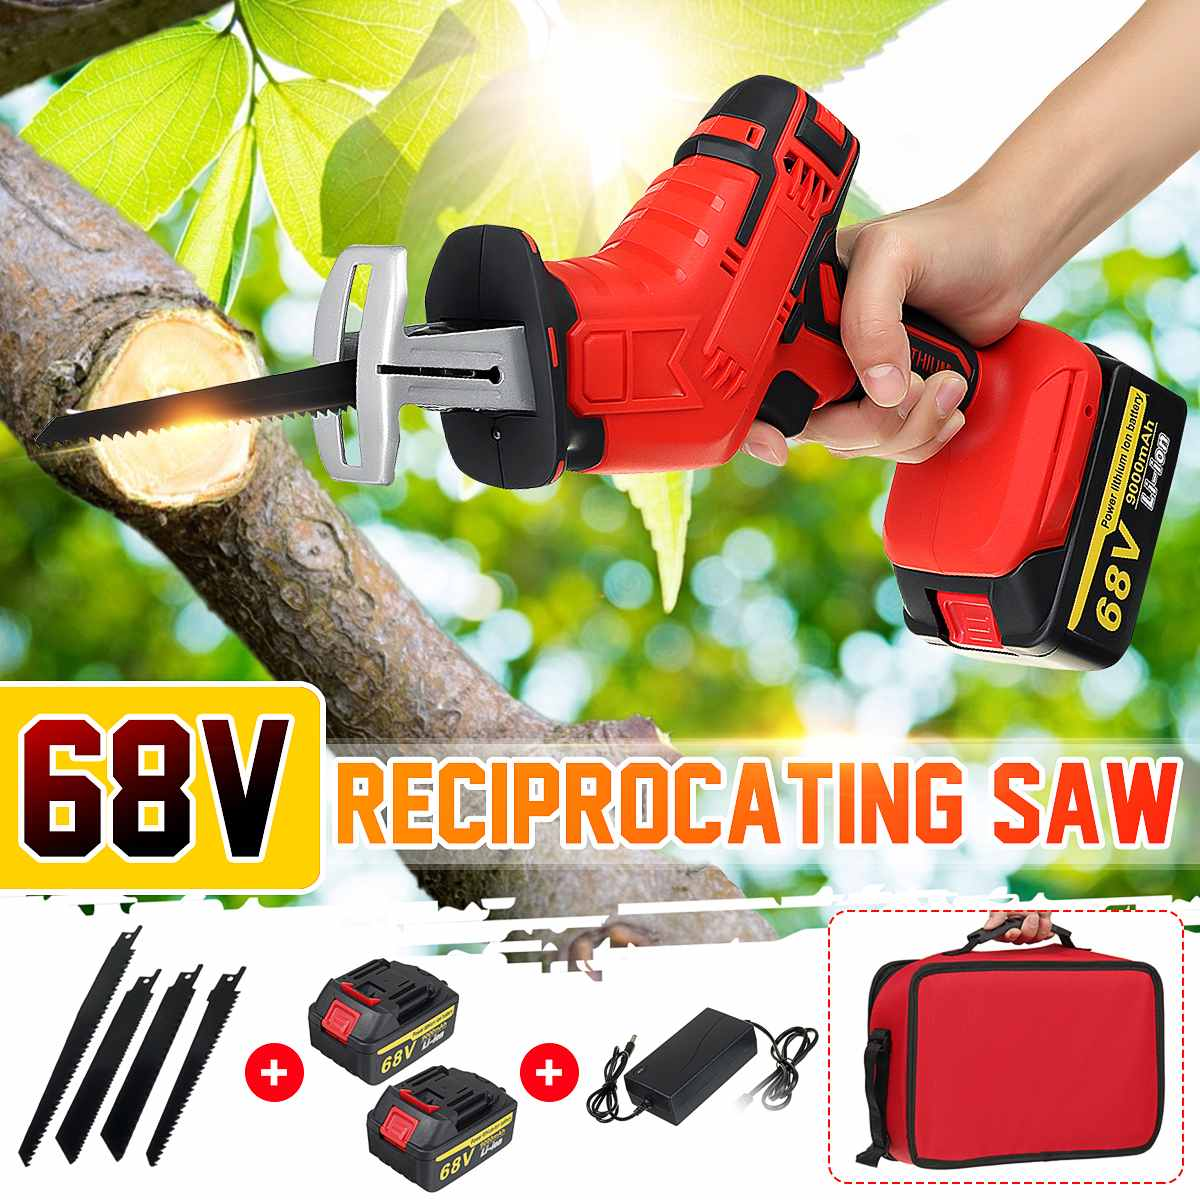 68V Reciprocating Saw Adjustable Speed Electric Saw with 4 Pieces Blades Saber Saw Portable Electric Saw for Wood Metal Cutting